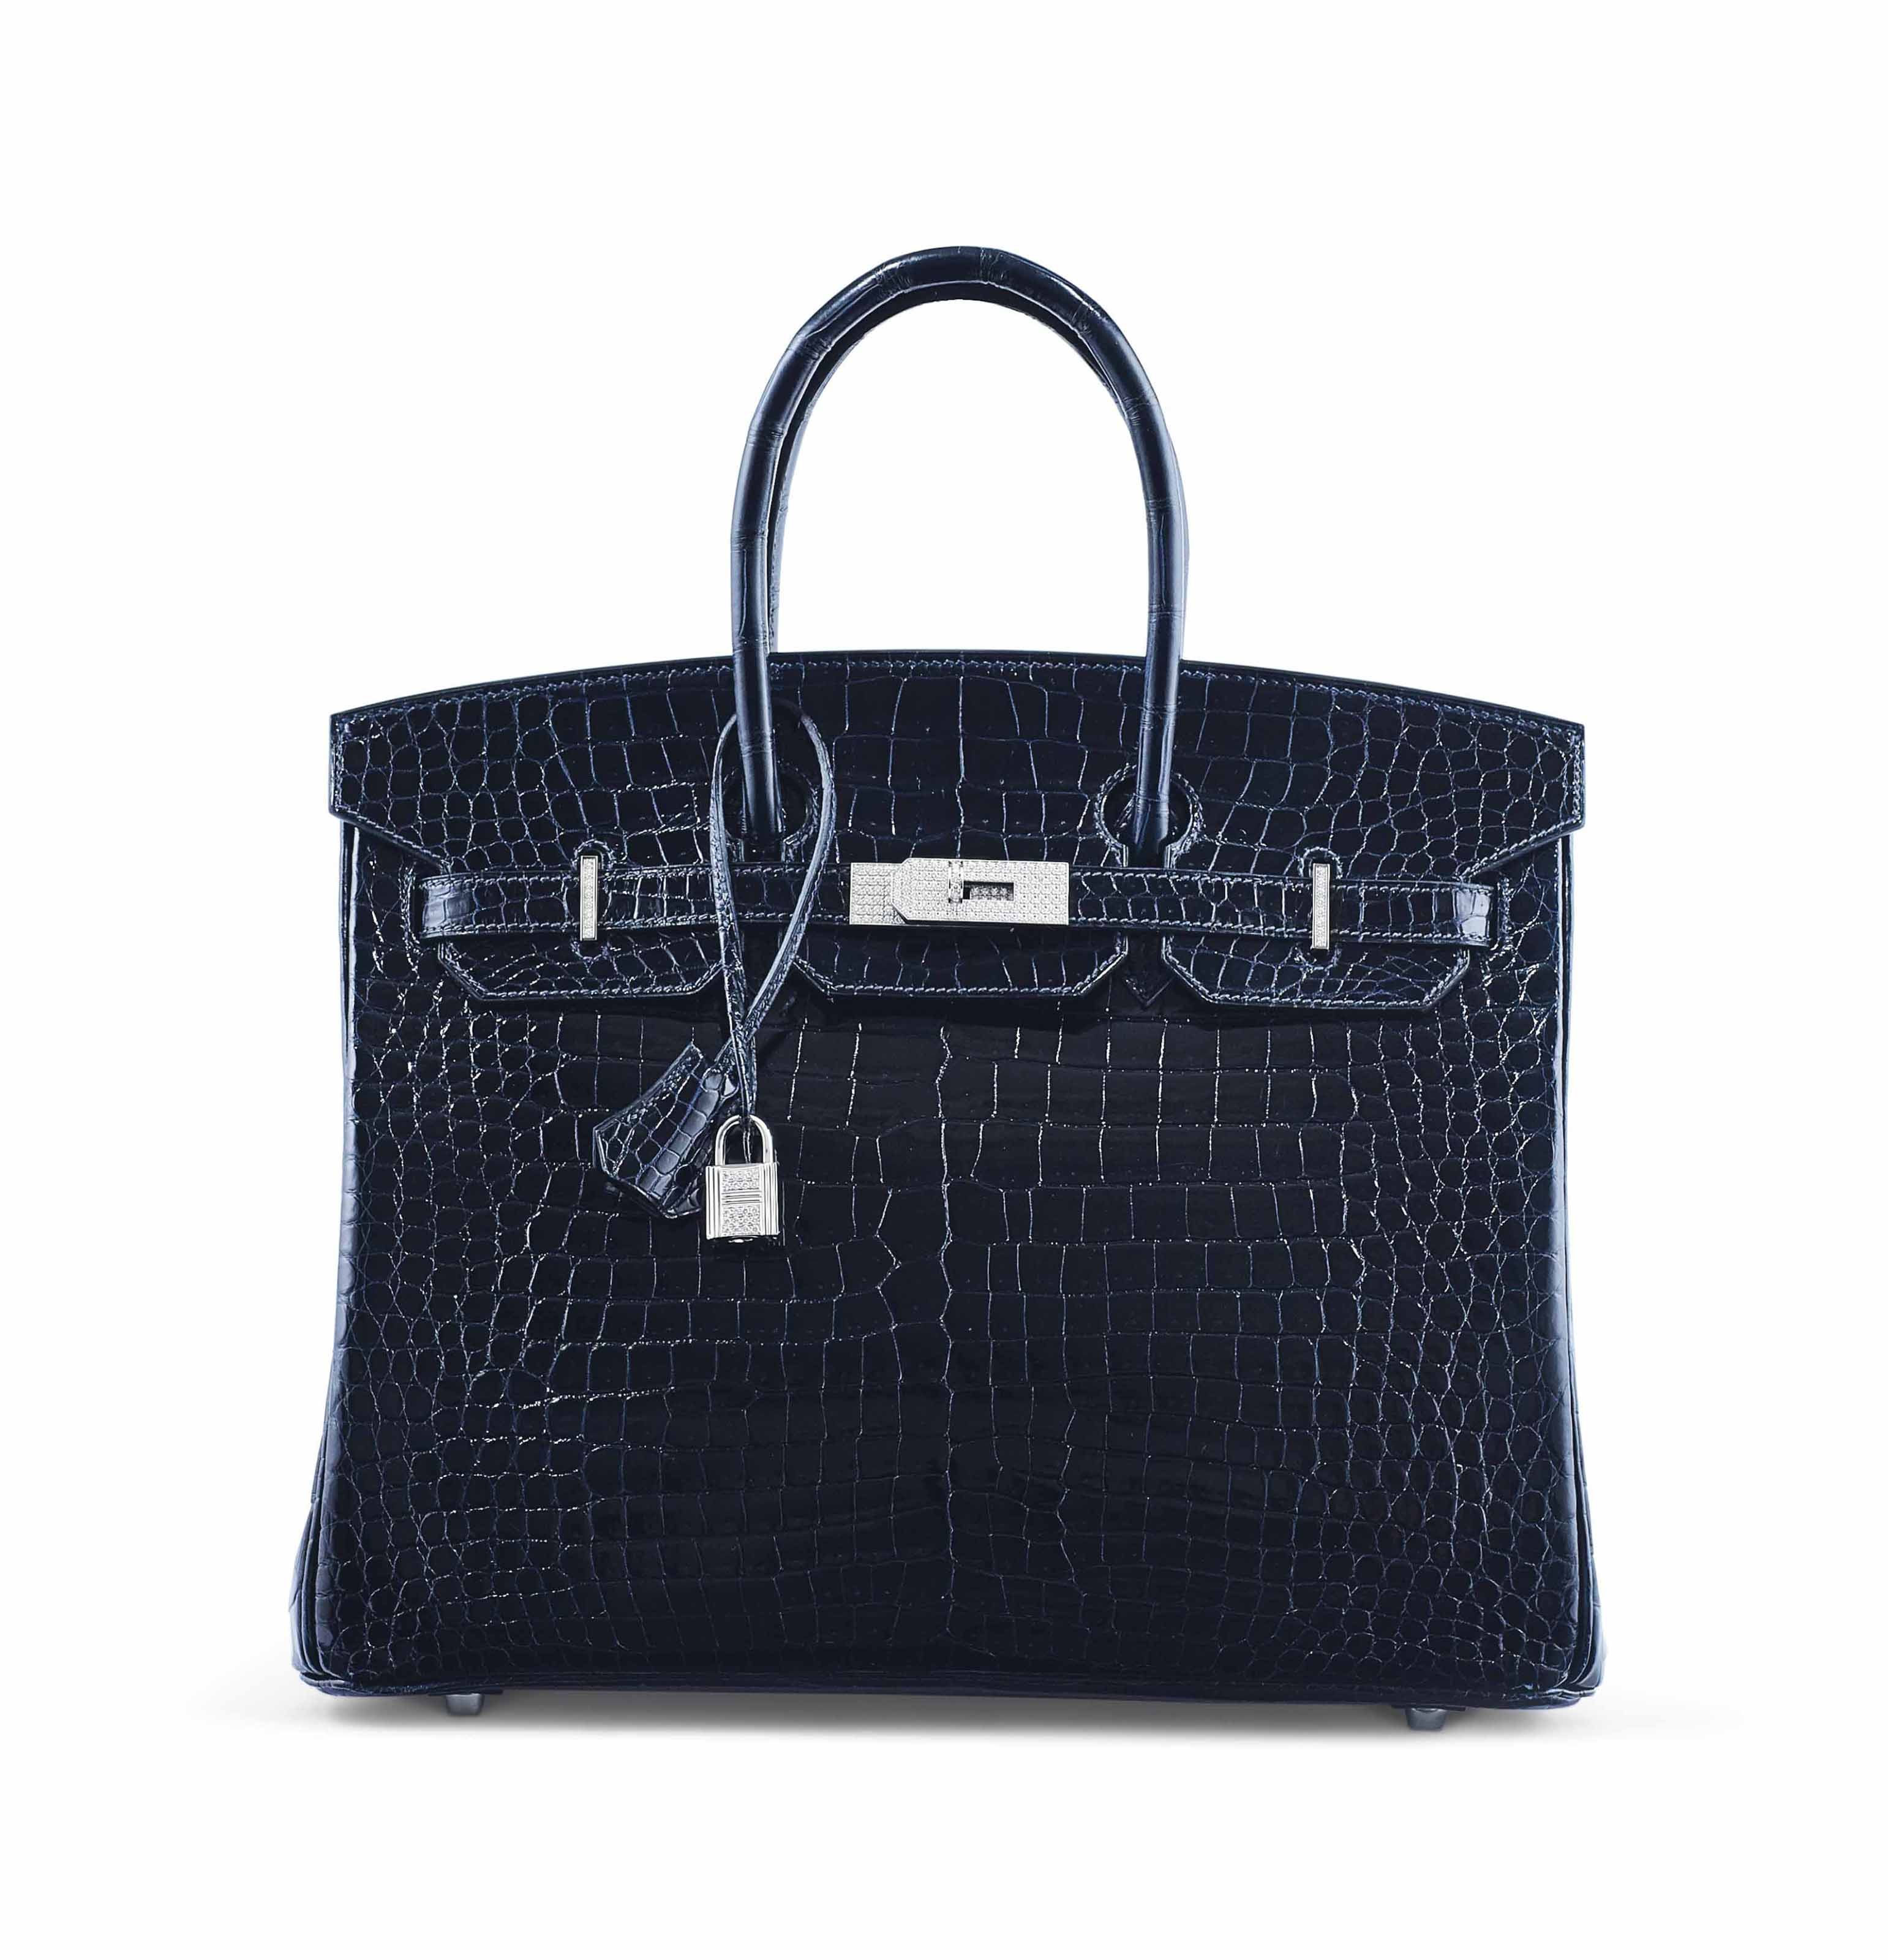 AN EXCEPTIONAL SHINY BLEU MARINE POROSUS CROCODILE DIAMOND BIRKIN 35 WITH 18K WHITE GOLD & DIAMOND HARDWARE